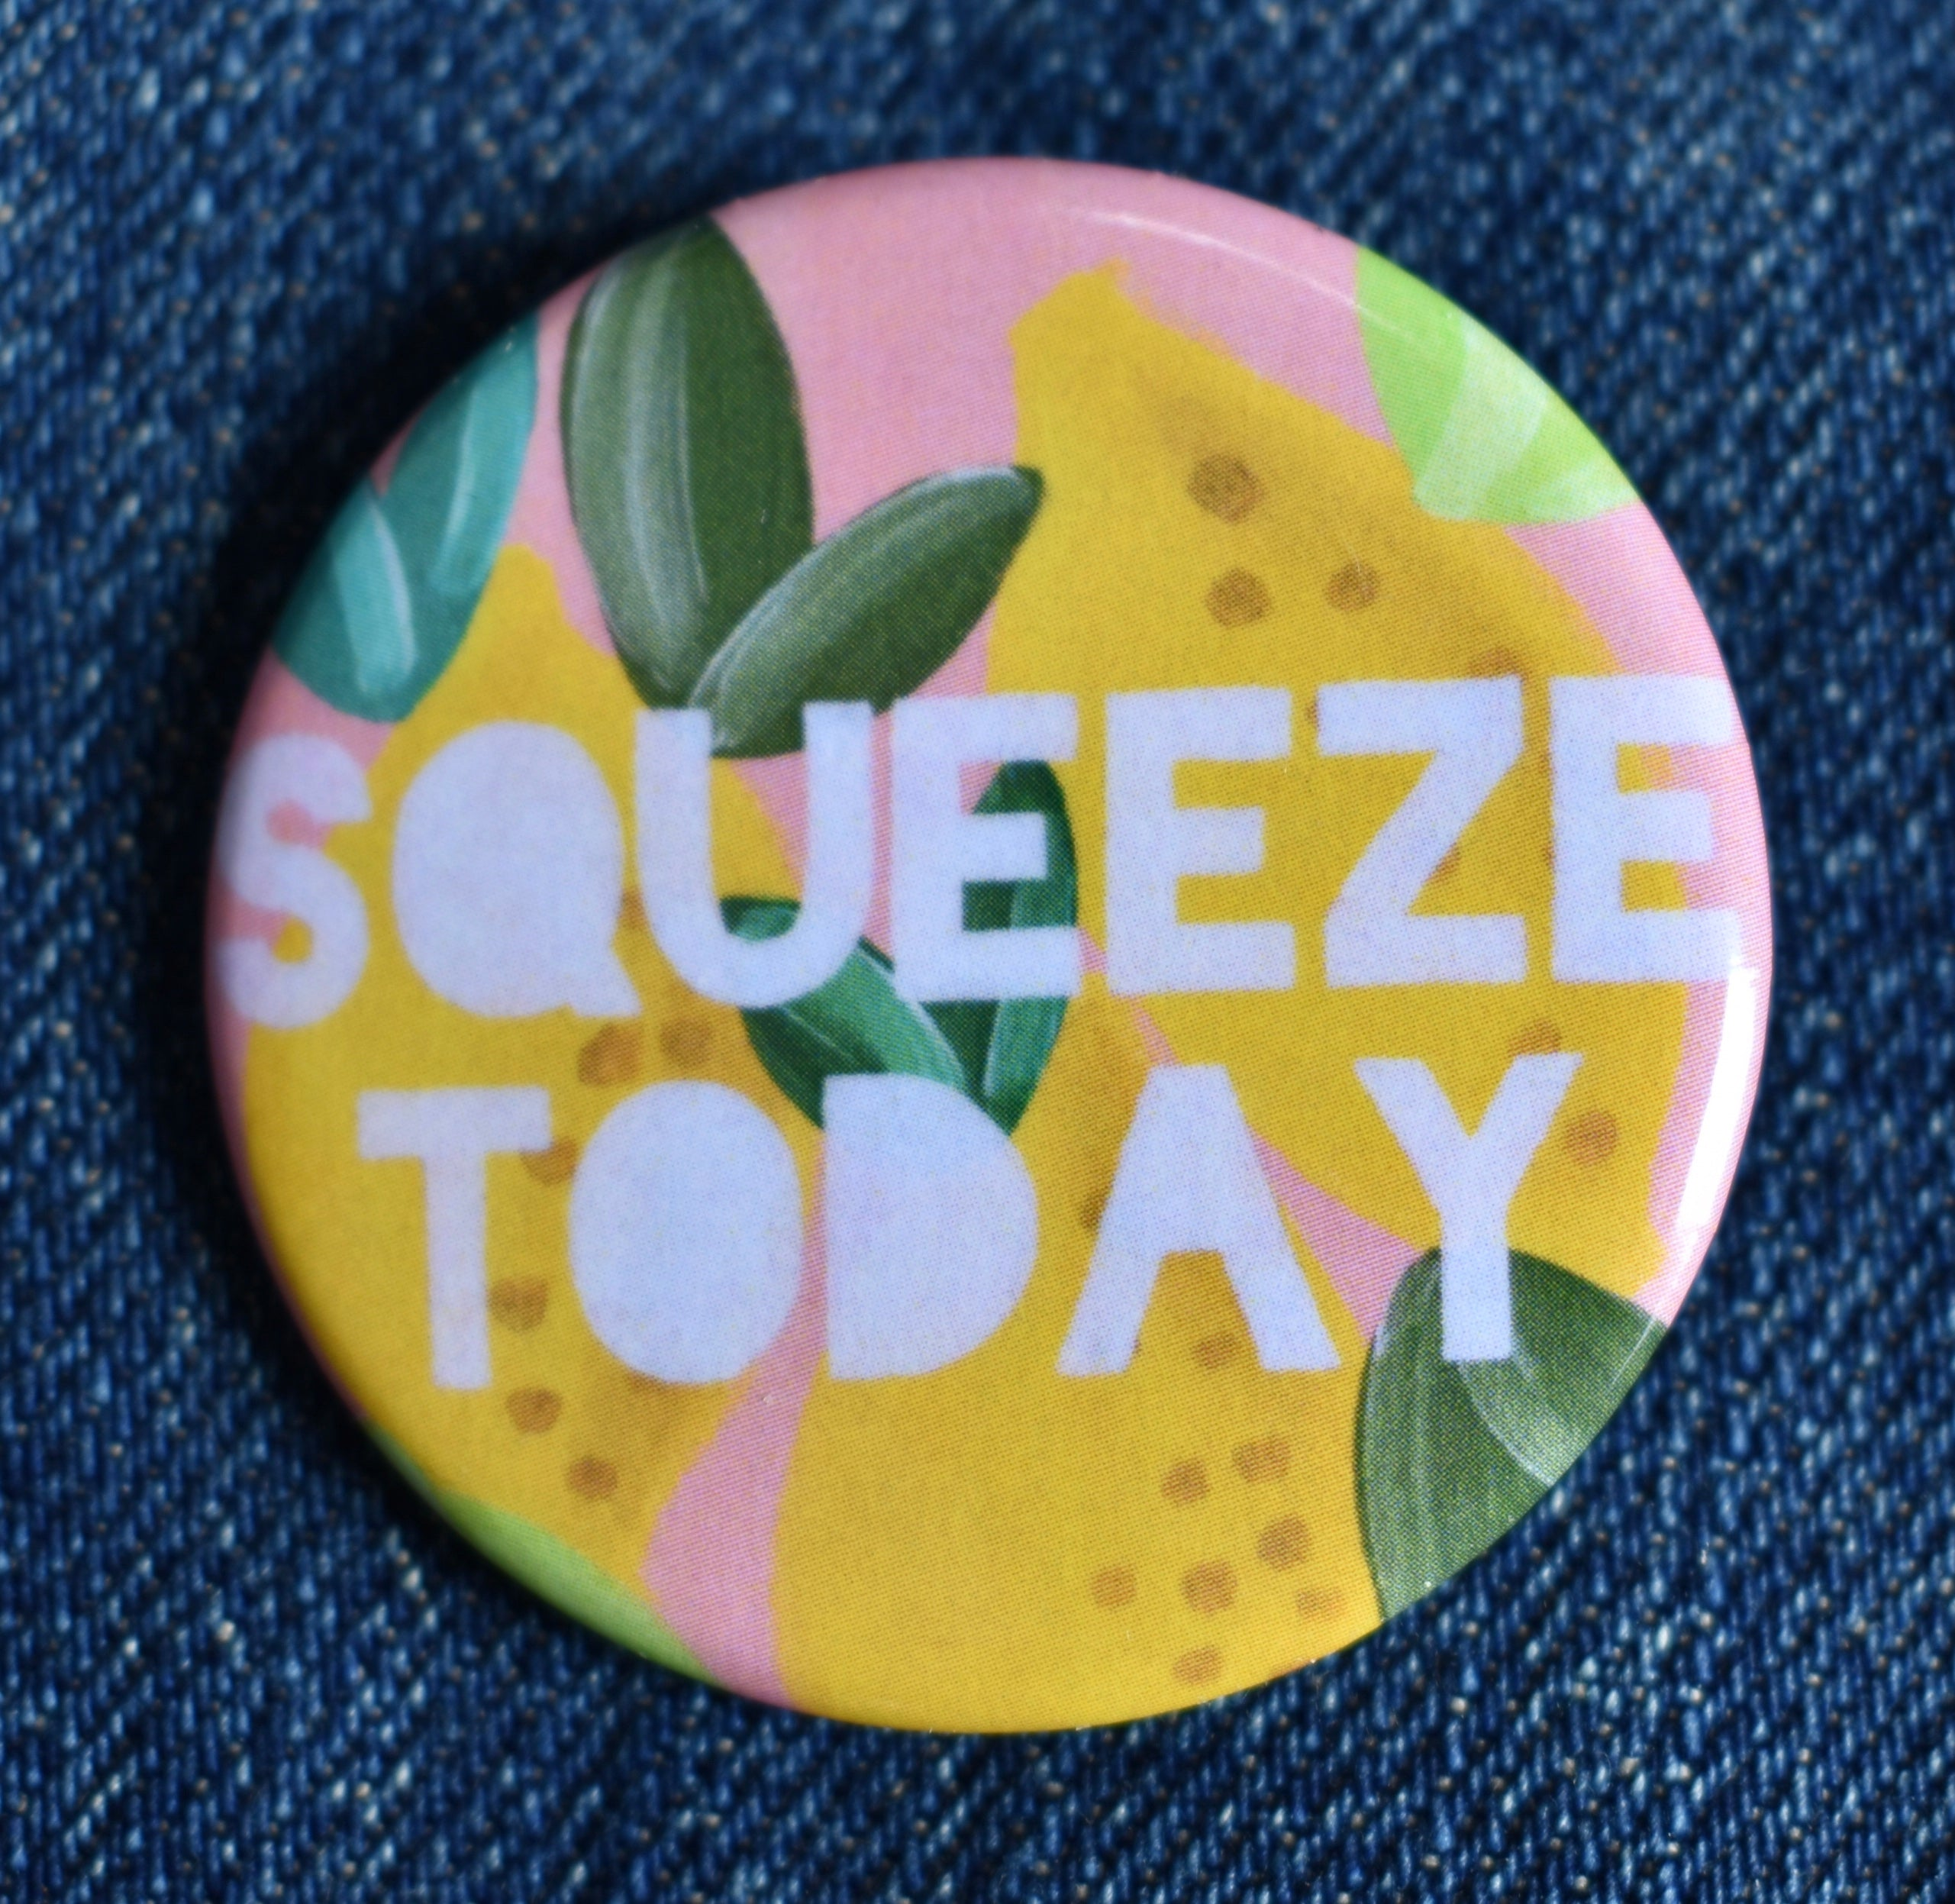 Squeeze Today Button